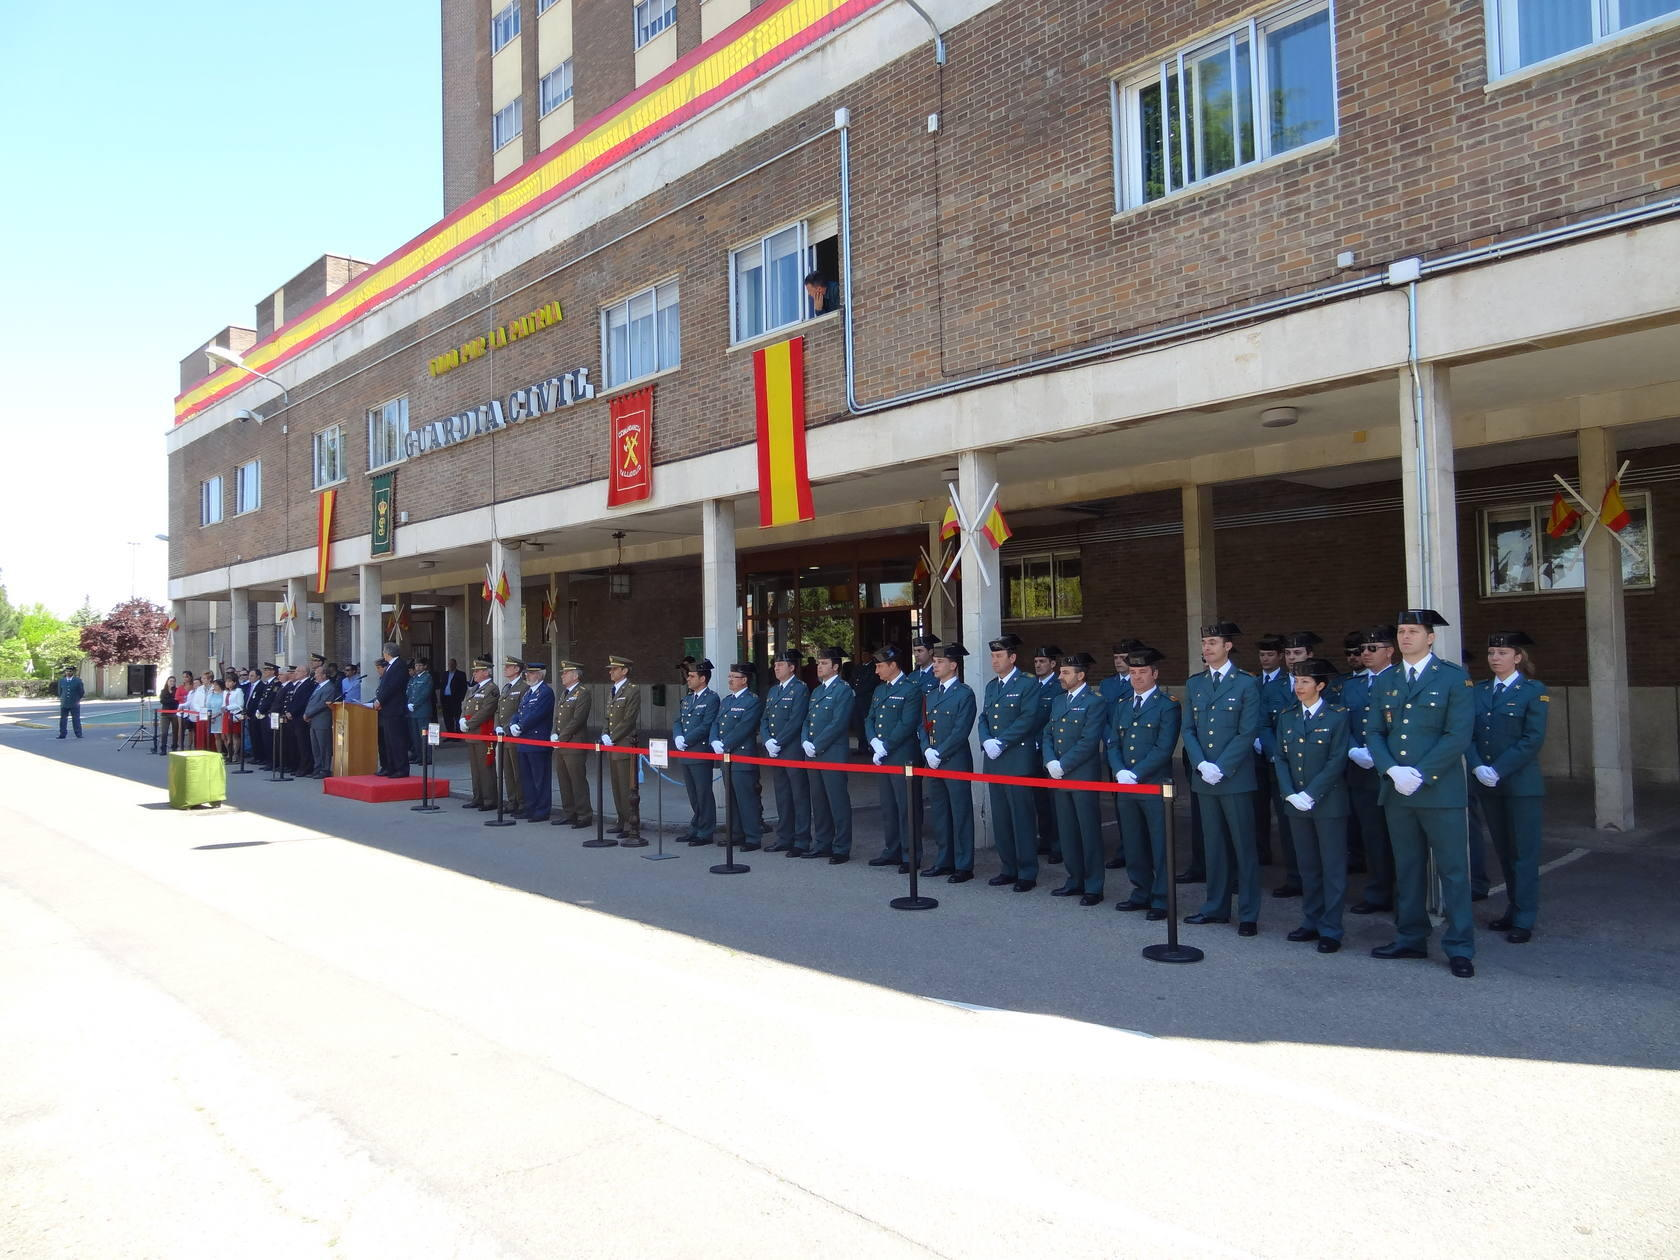 169 aniversario de la Guardia Civil en Valladolid